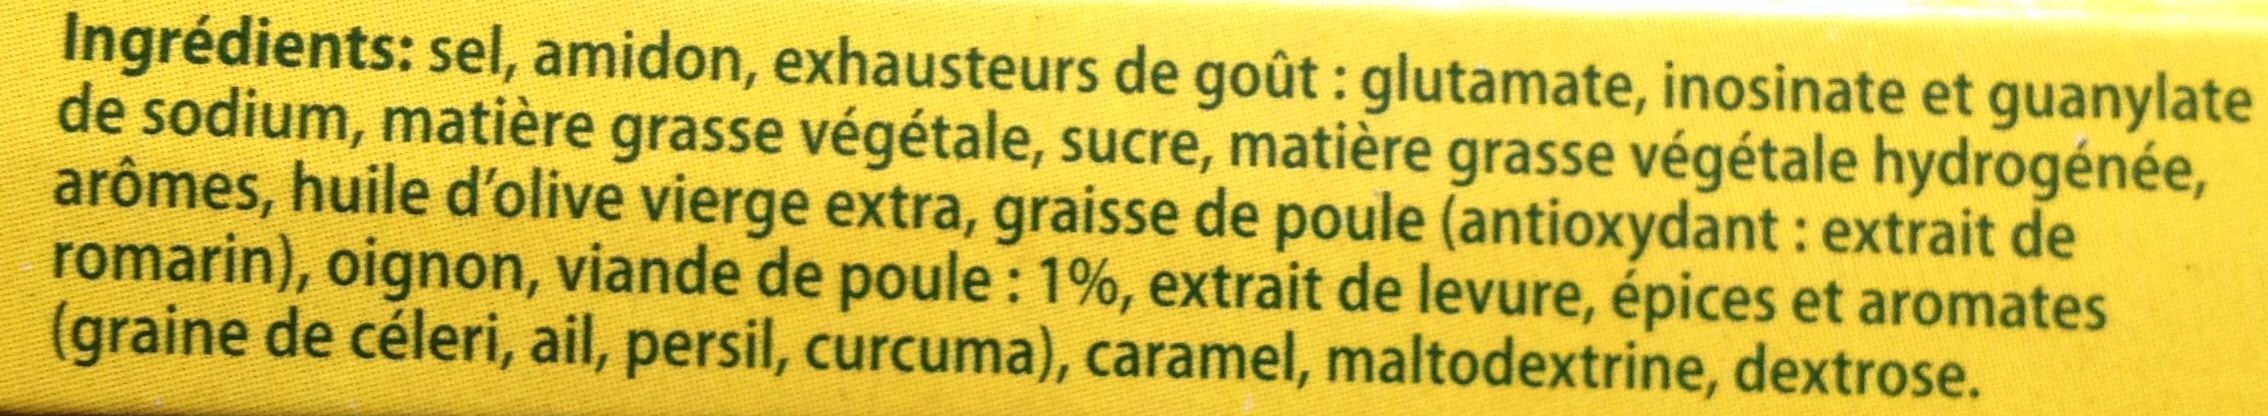 Bouillon de poule - Ingredients